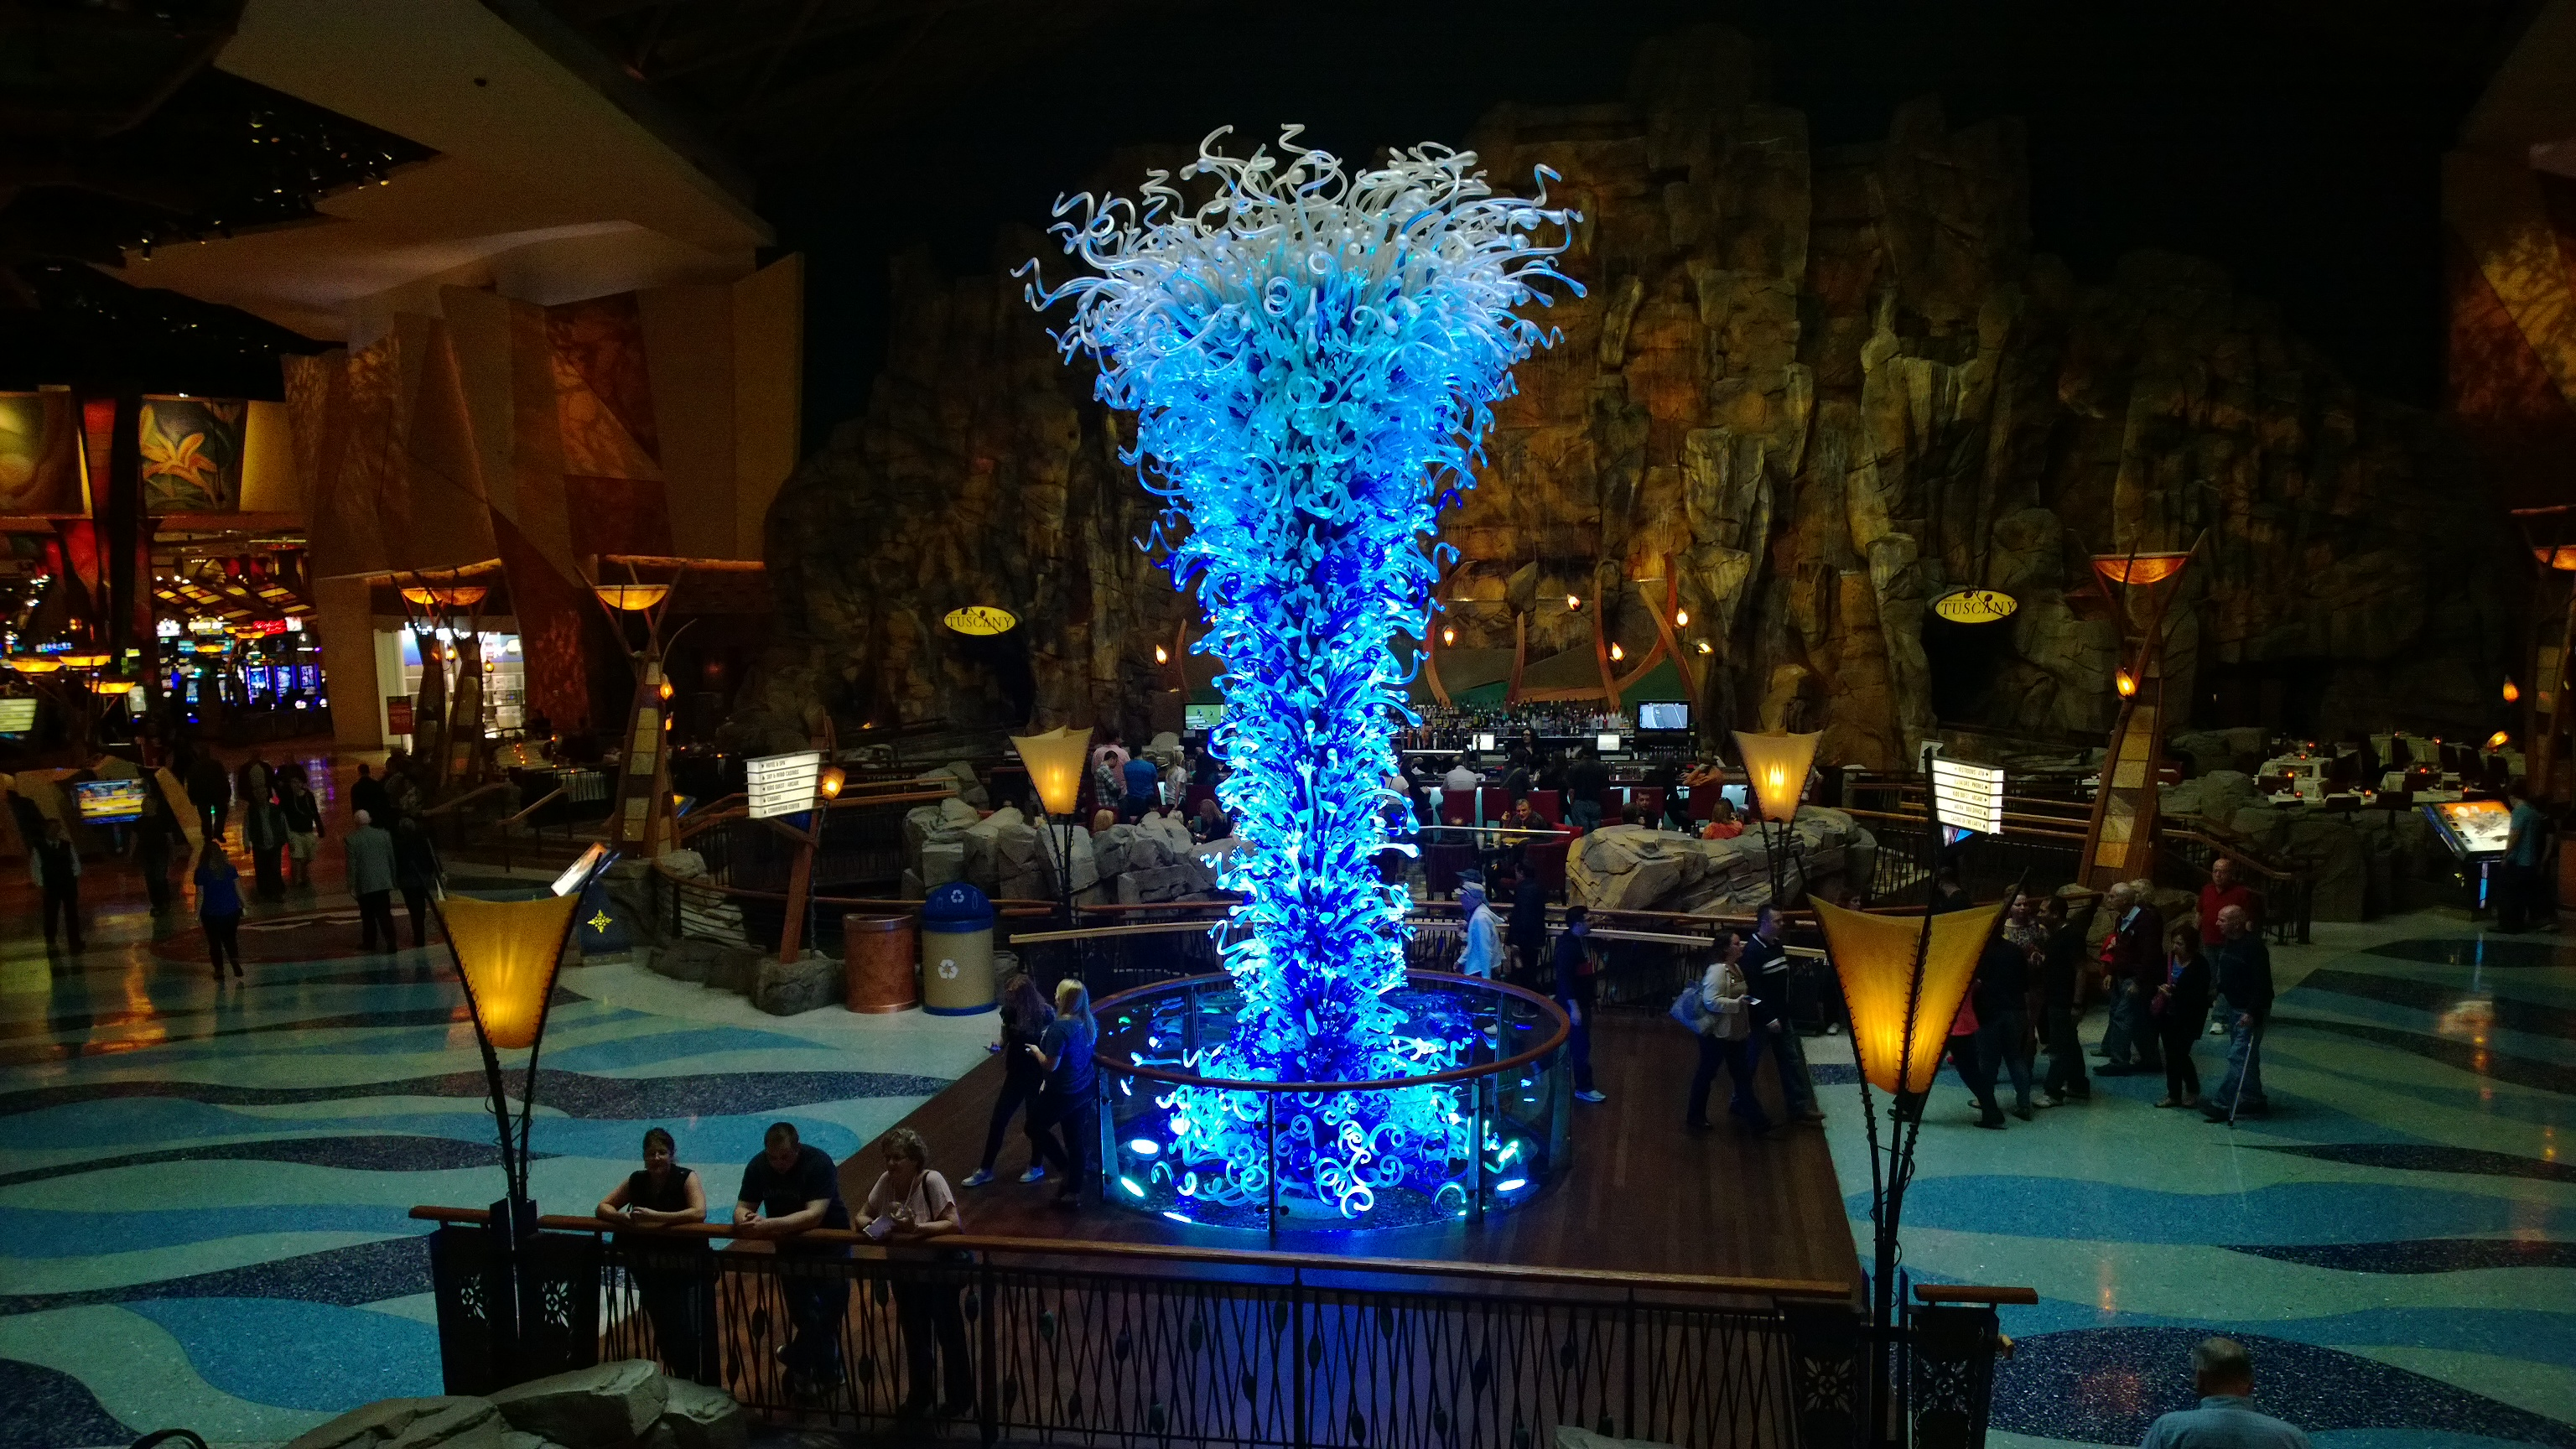 A visit to Margaritaville Mohegan Sun in Uncasville, is an opportunity to step out of your daily routine and into an island adventure, if only for the evening.